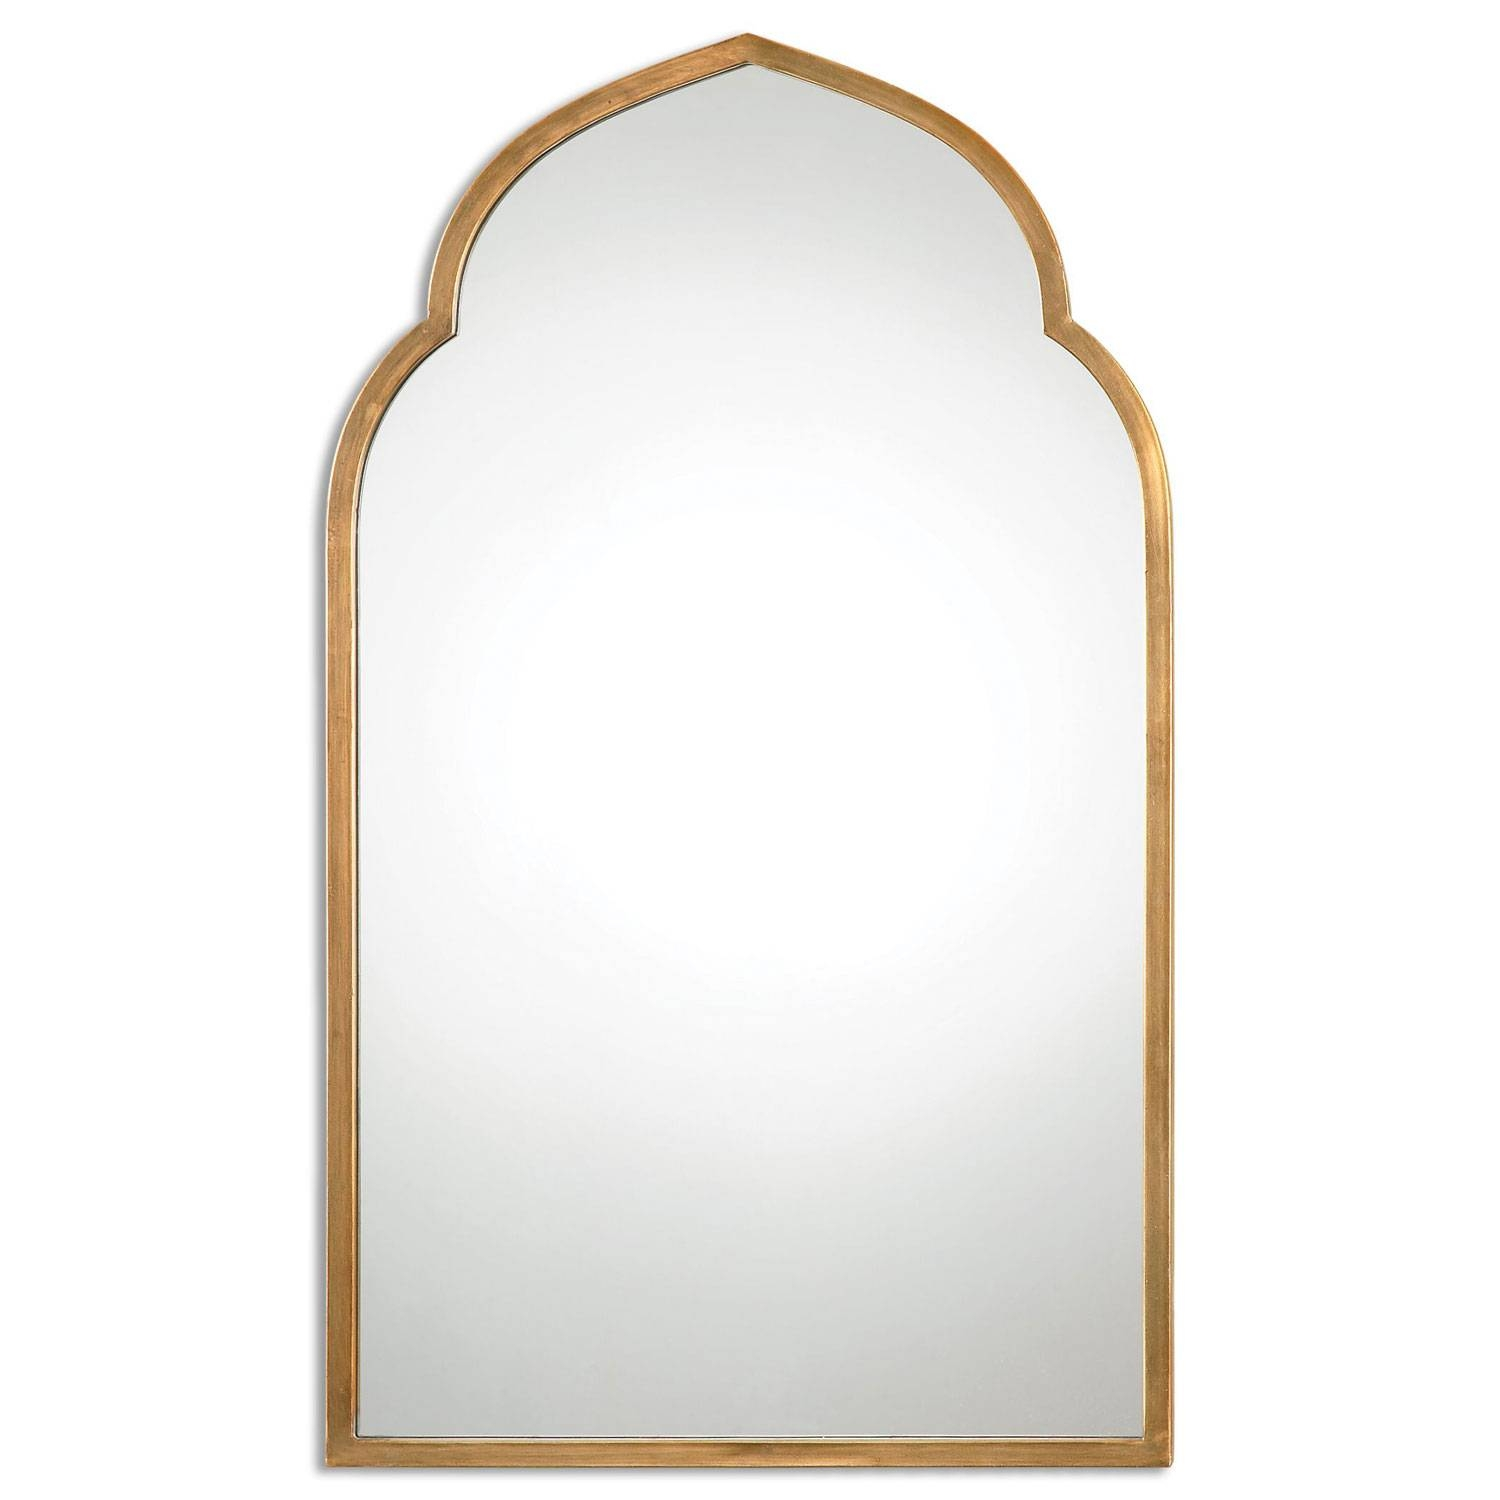 Arched Crowned Mirrors | Bellacor with Curved Top Mirrors (Image 2 of 15)